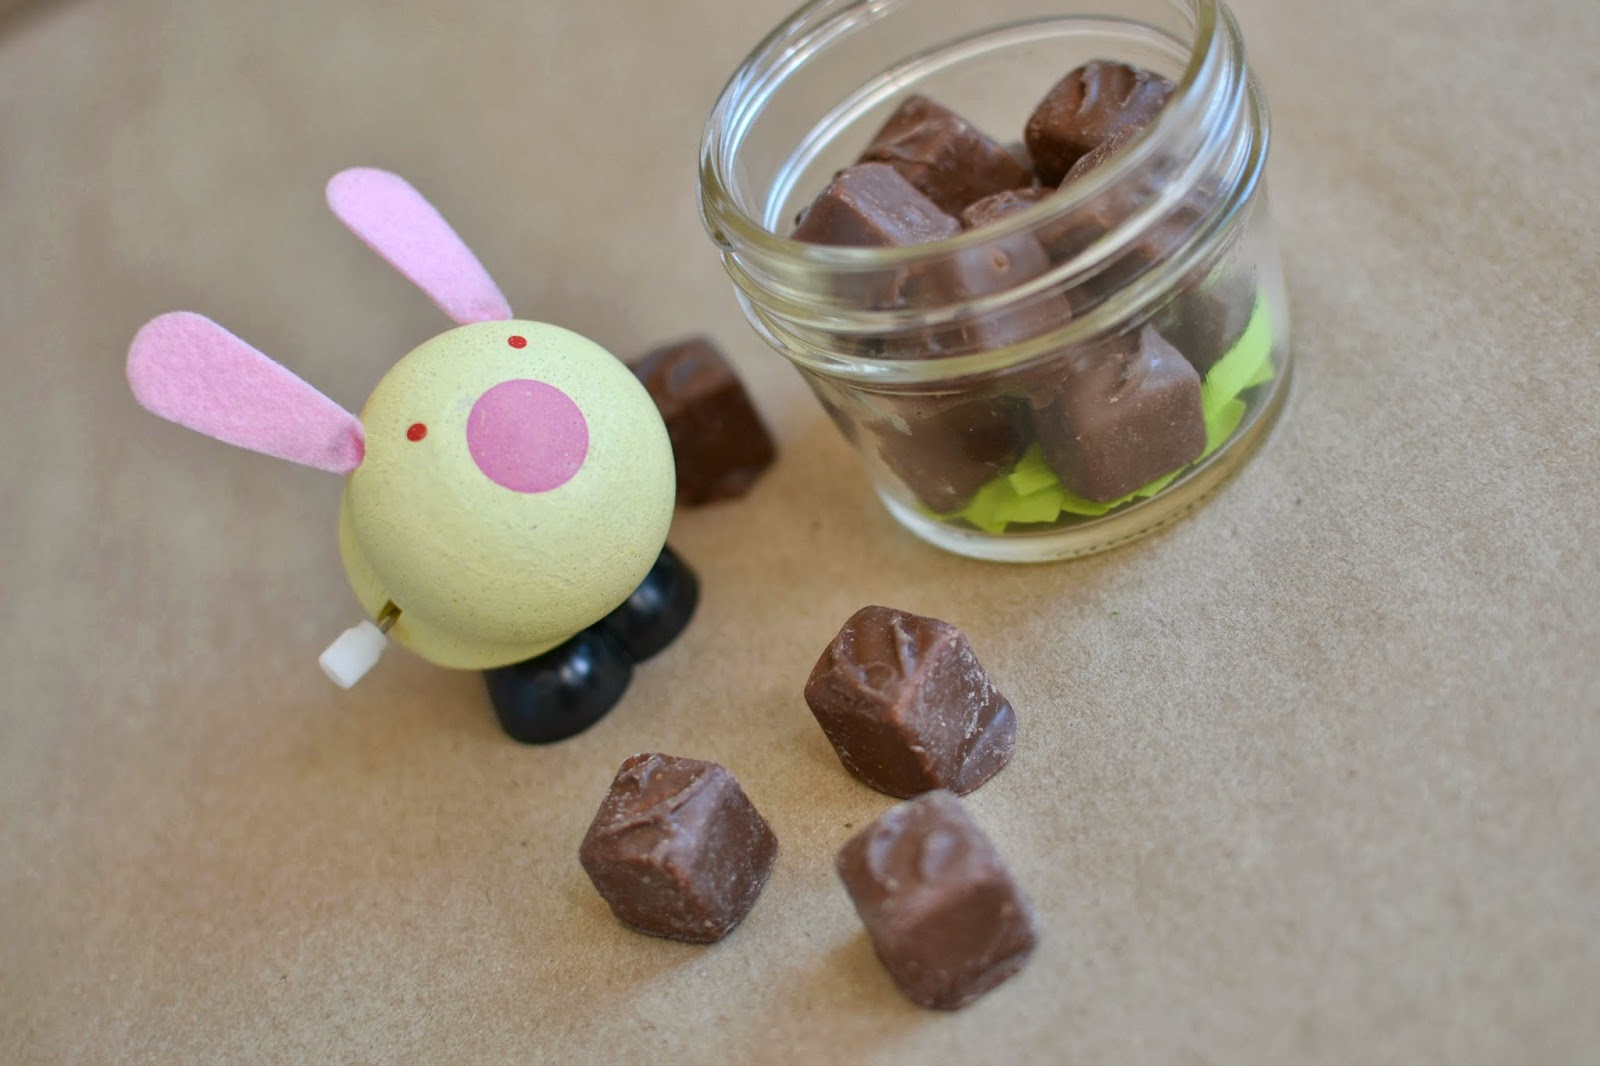 Mommy Testers, Bunny Poop candy, Bunny poop Easter treat, Chocolate bunny poop, 3 Musketeers, #EatMoreBites